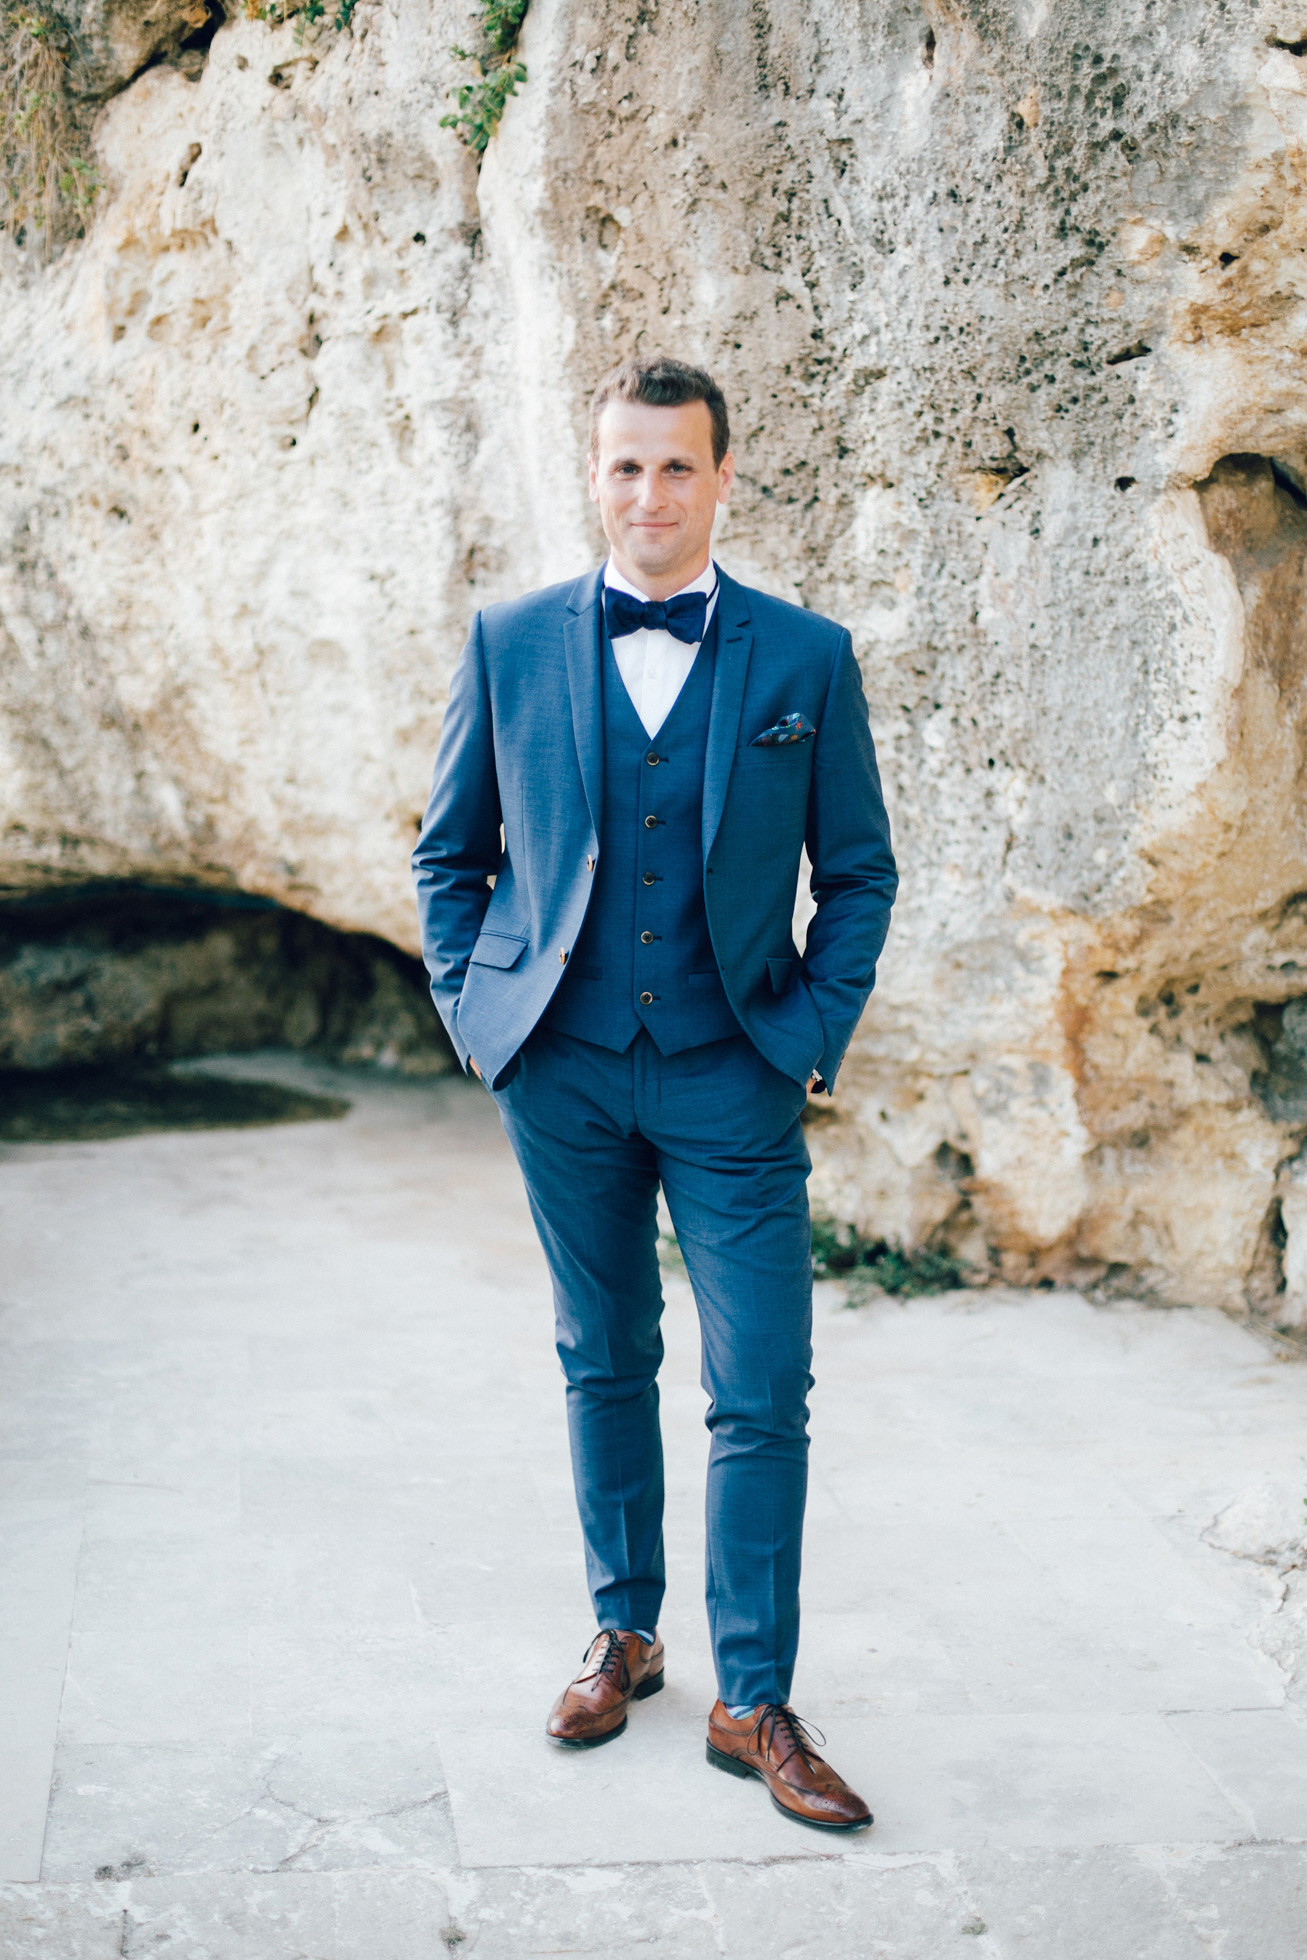 Portrait of an elegant modern groom on his wedding day in Crete posing for professional photographer.